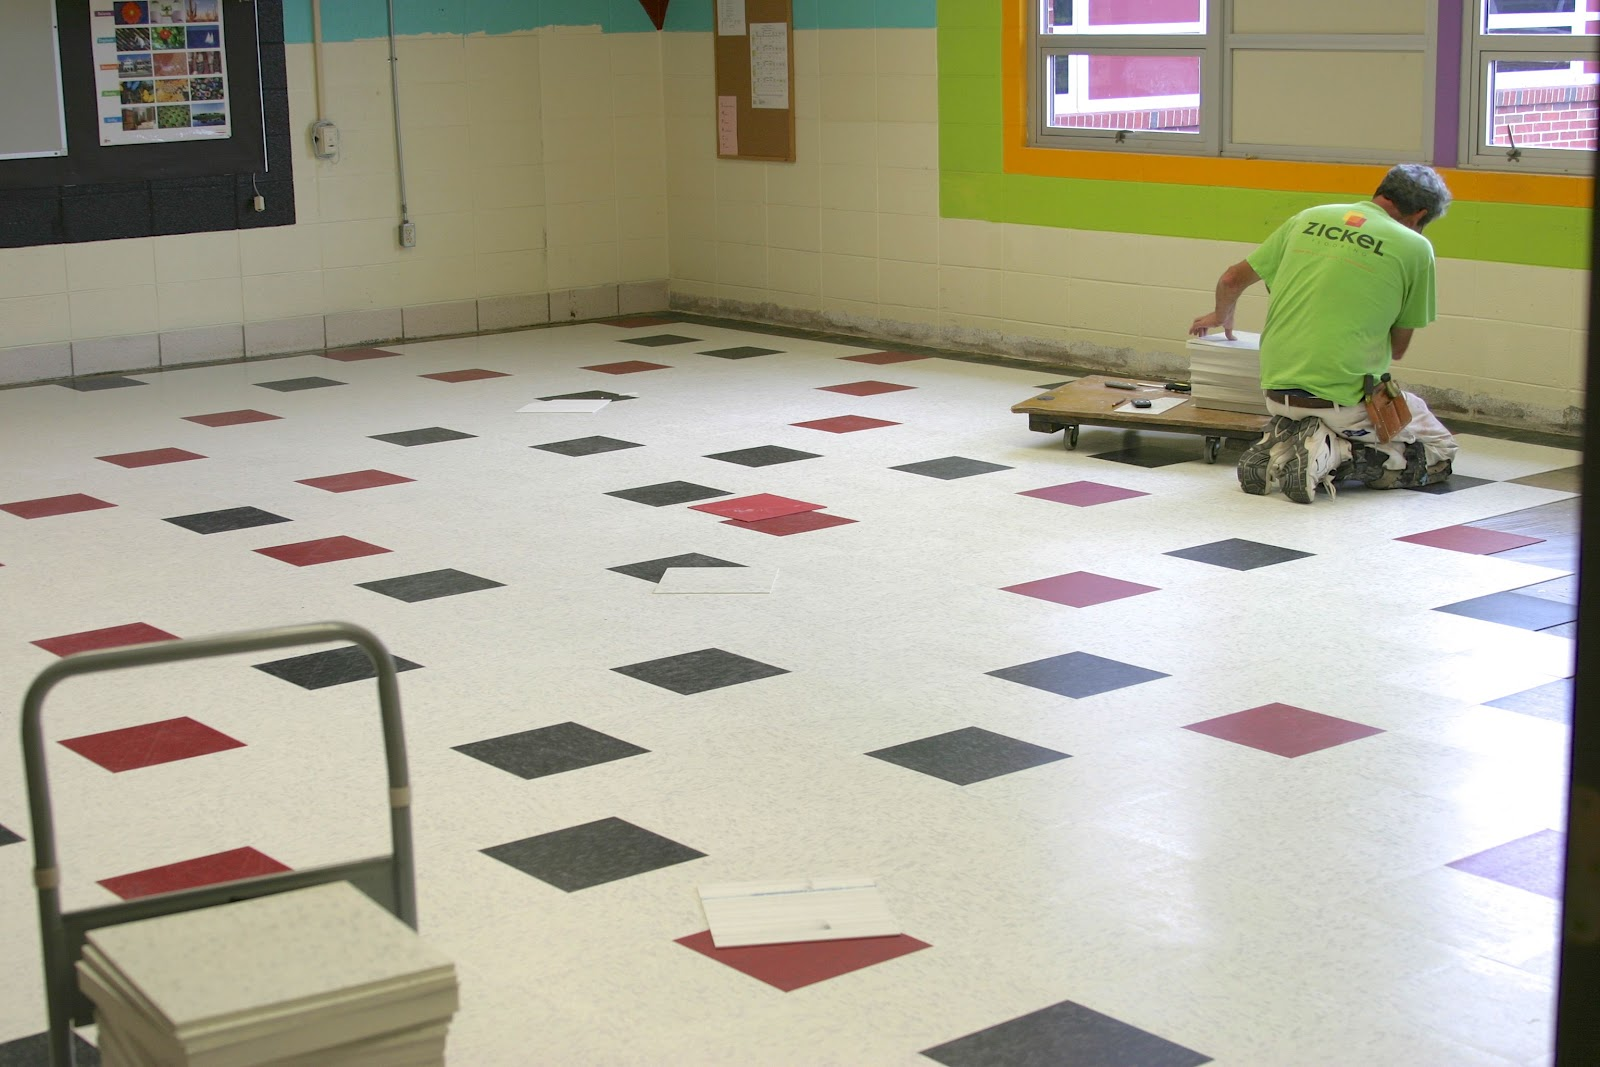 School tile flooring